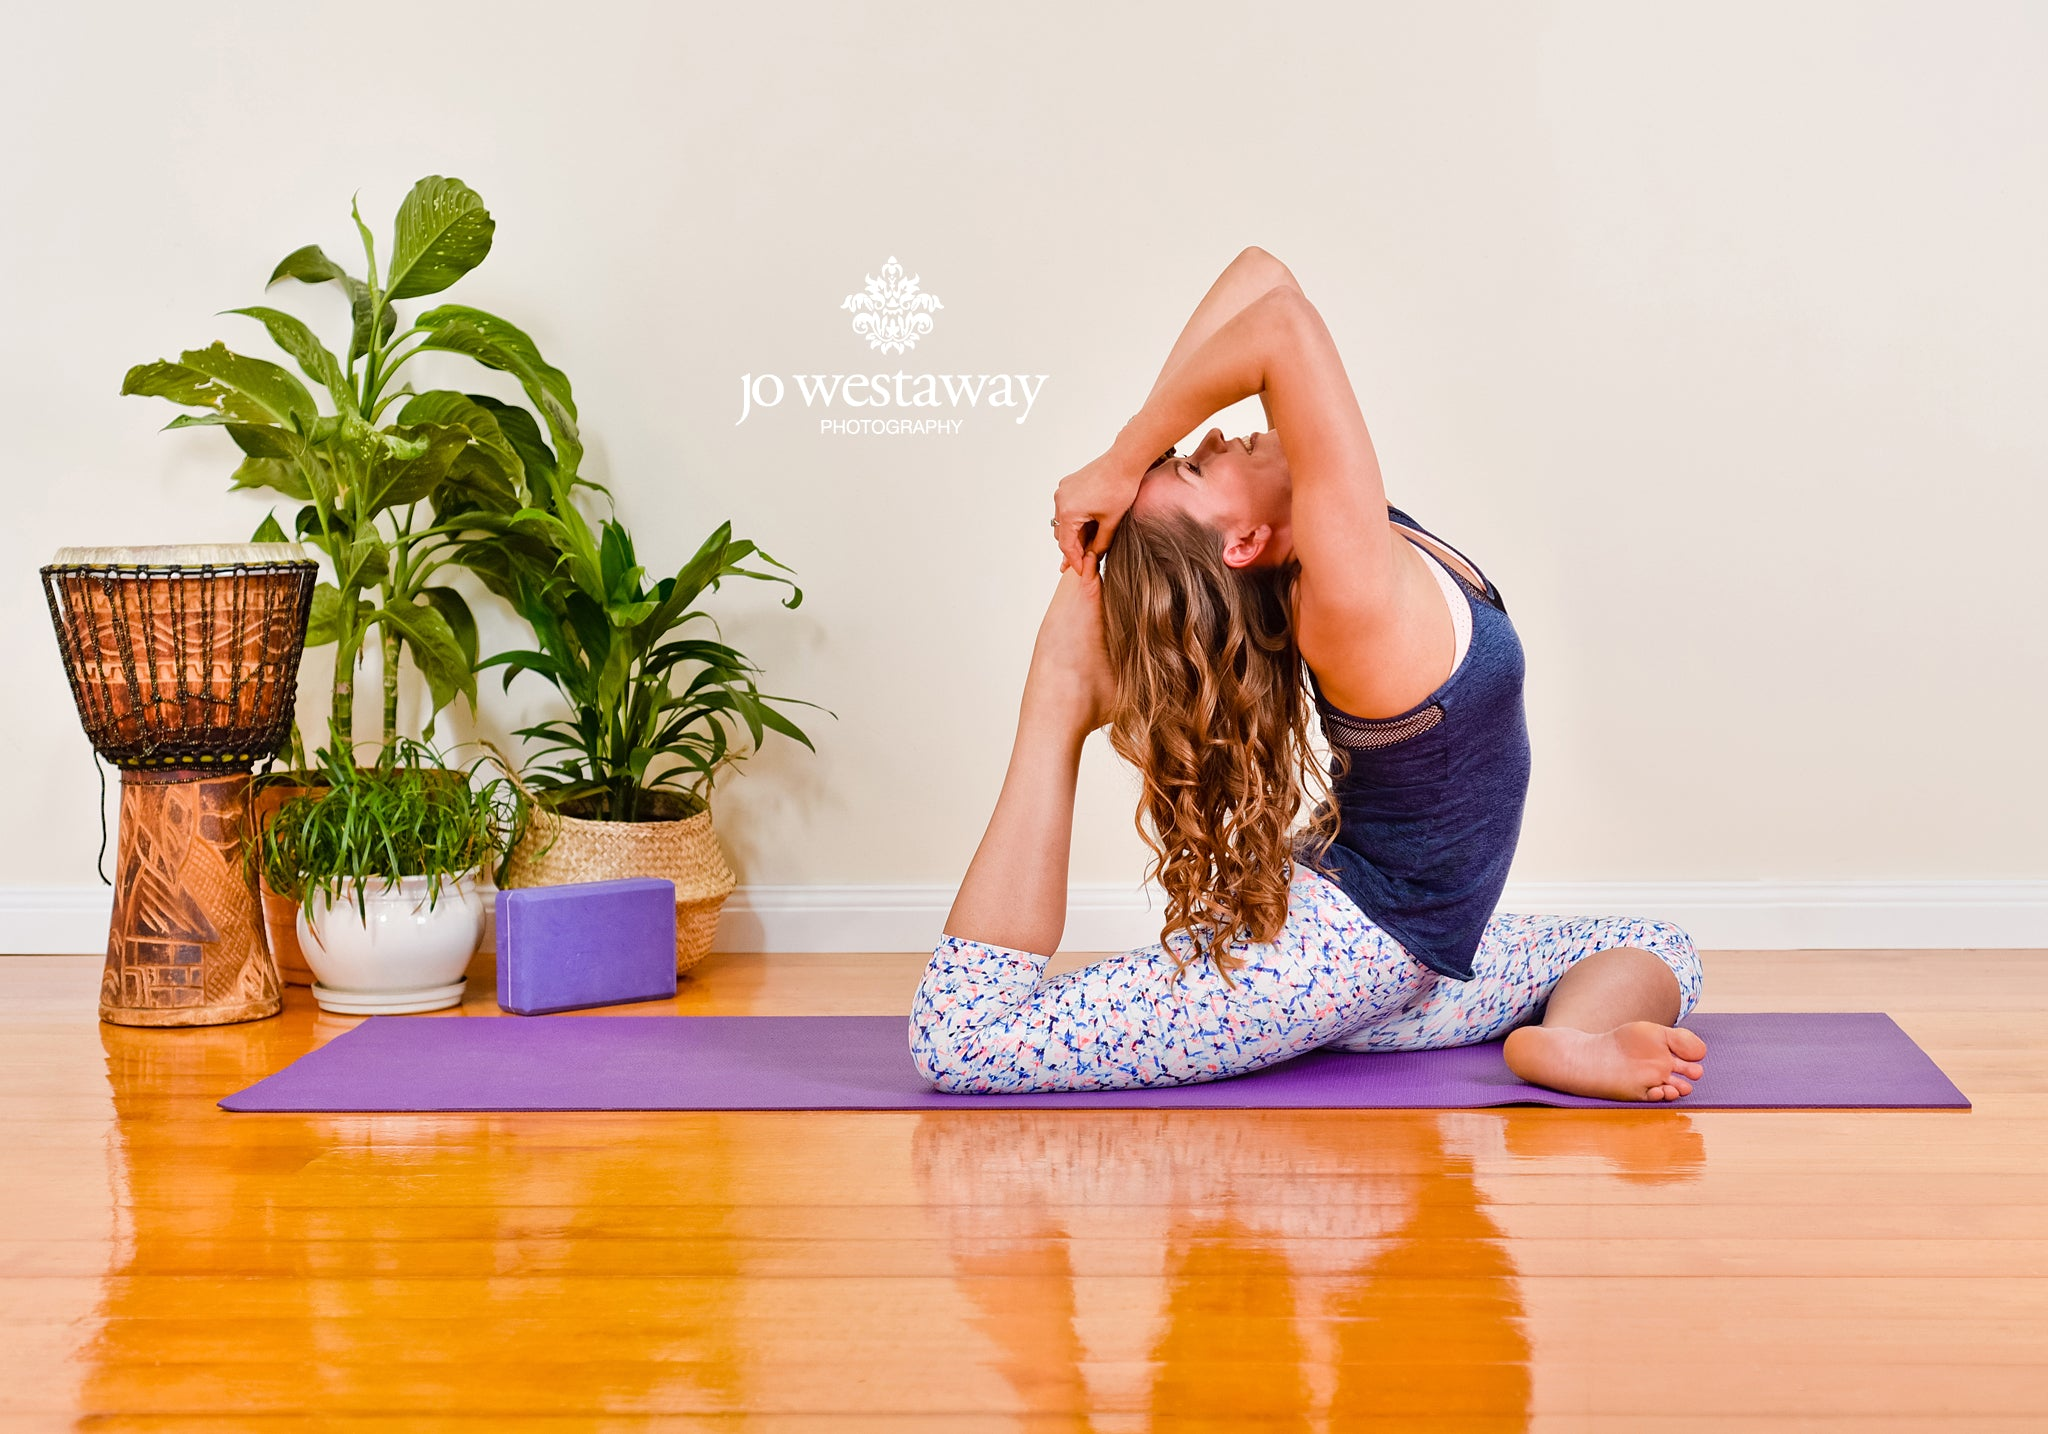 Yoga business photos and personal brand images - Brisbane branding photography studio